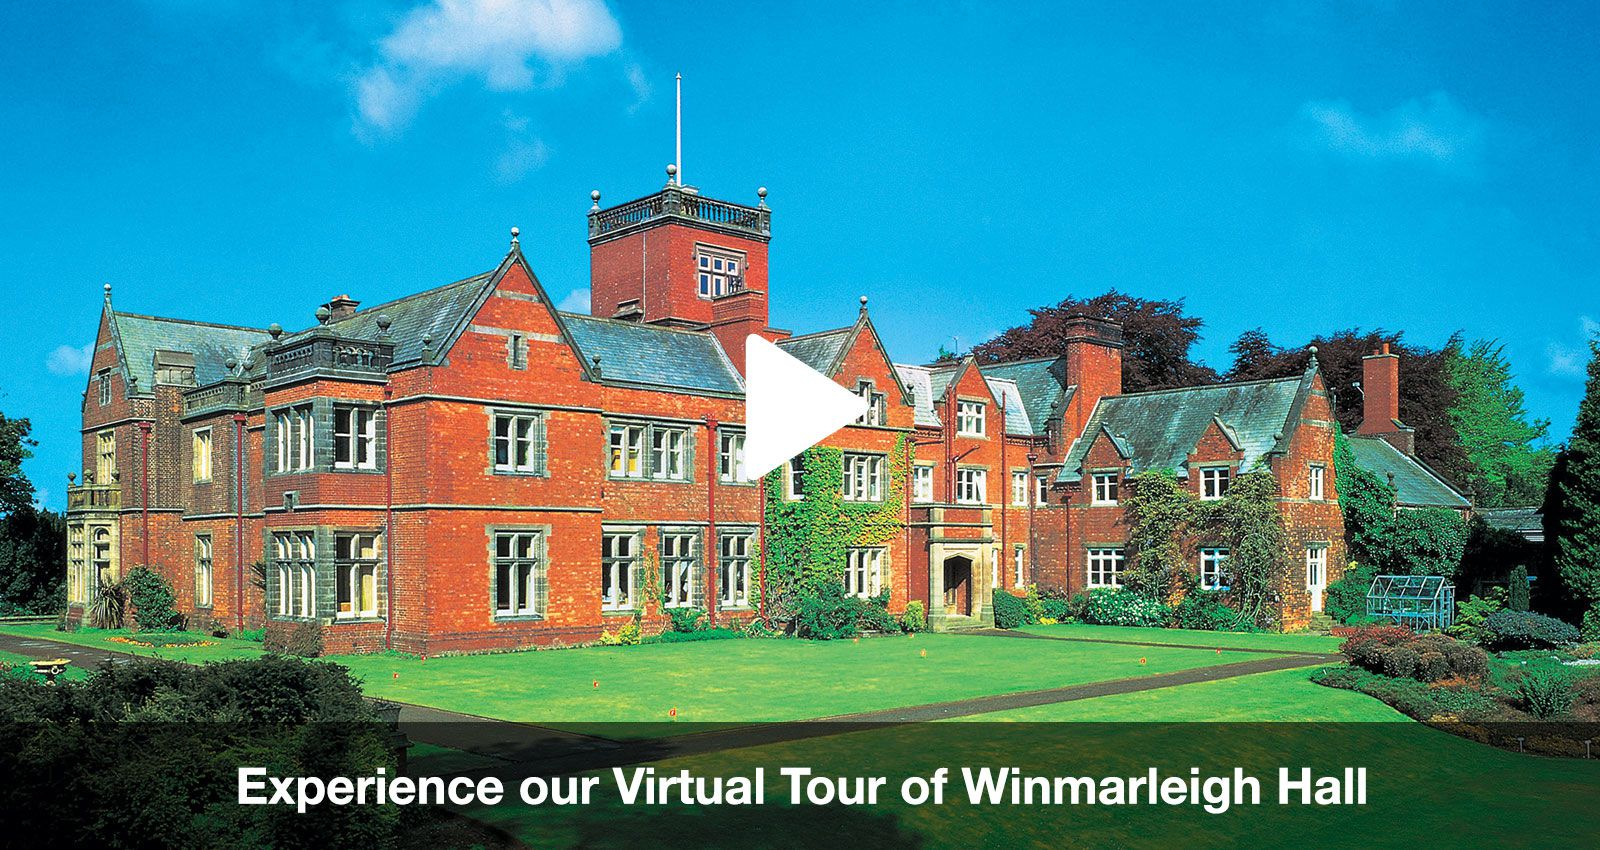 Primary School Trips to Winmarleigh Hall